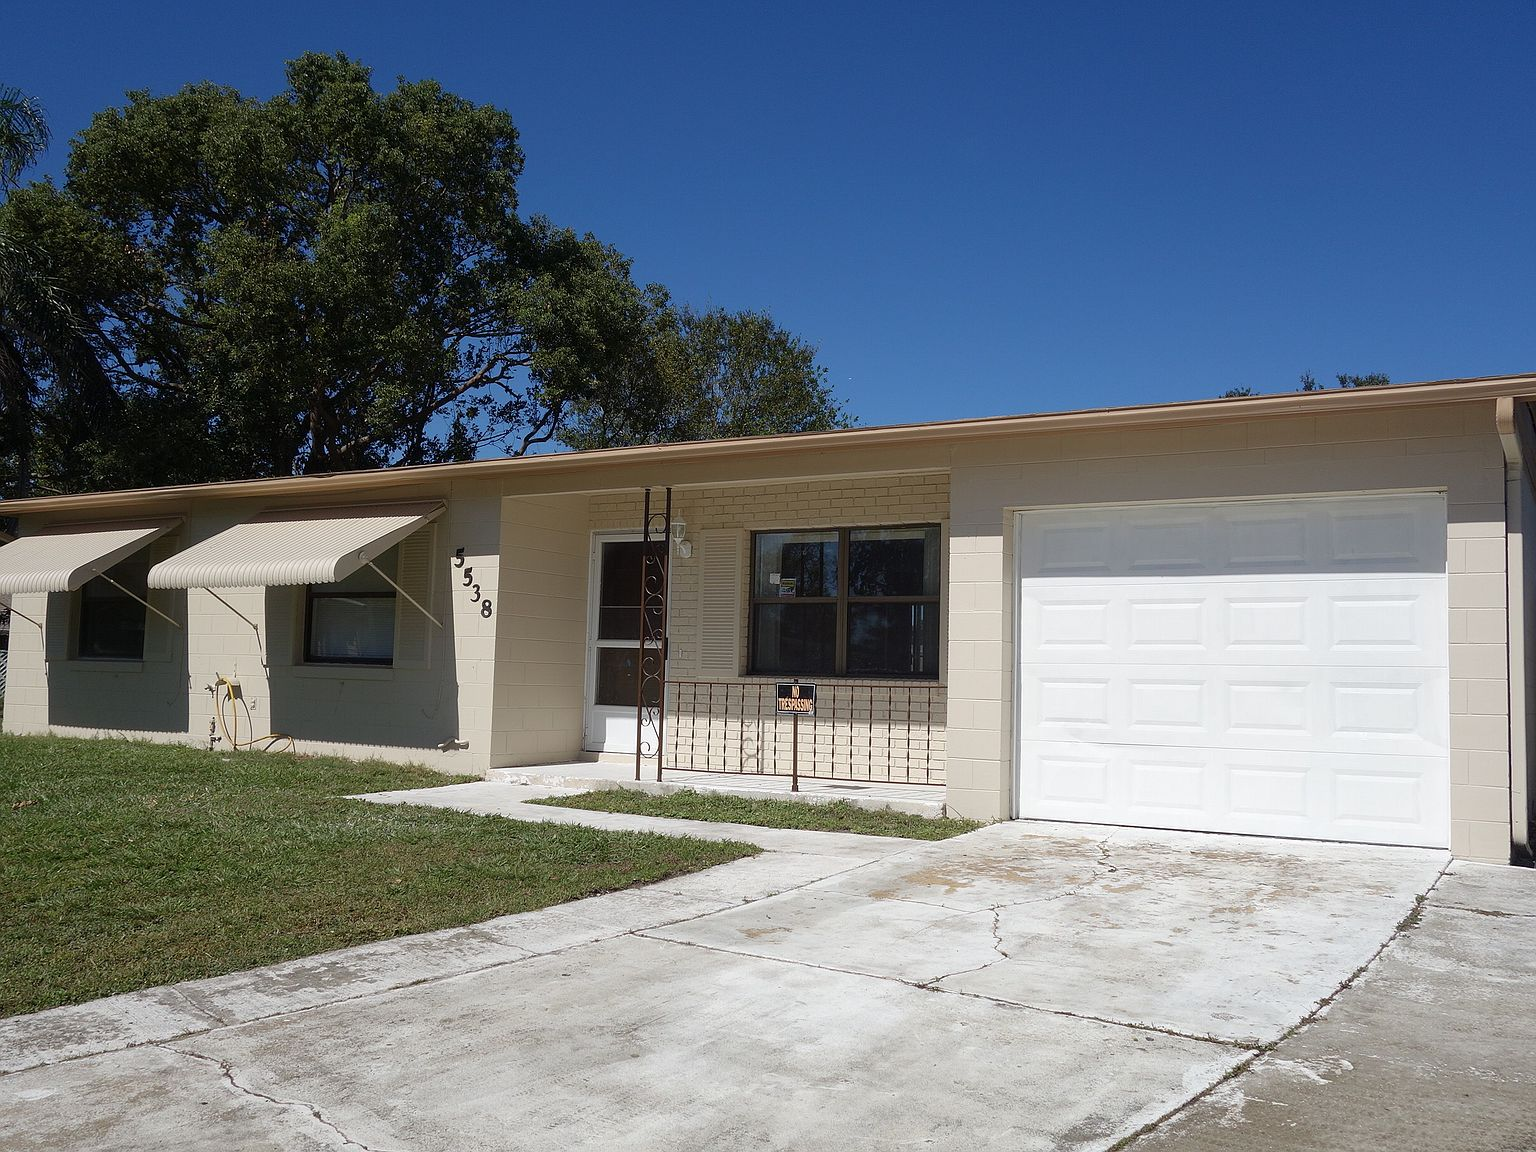 5538 showalter dr orlando fl 32839 zillow zillow